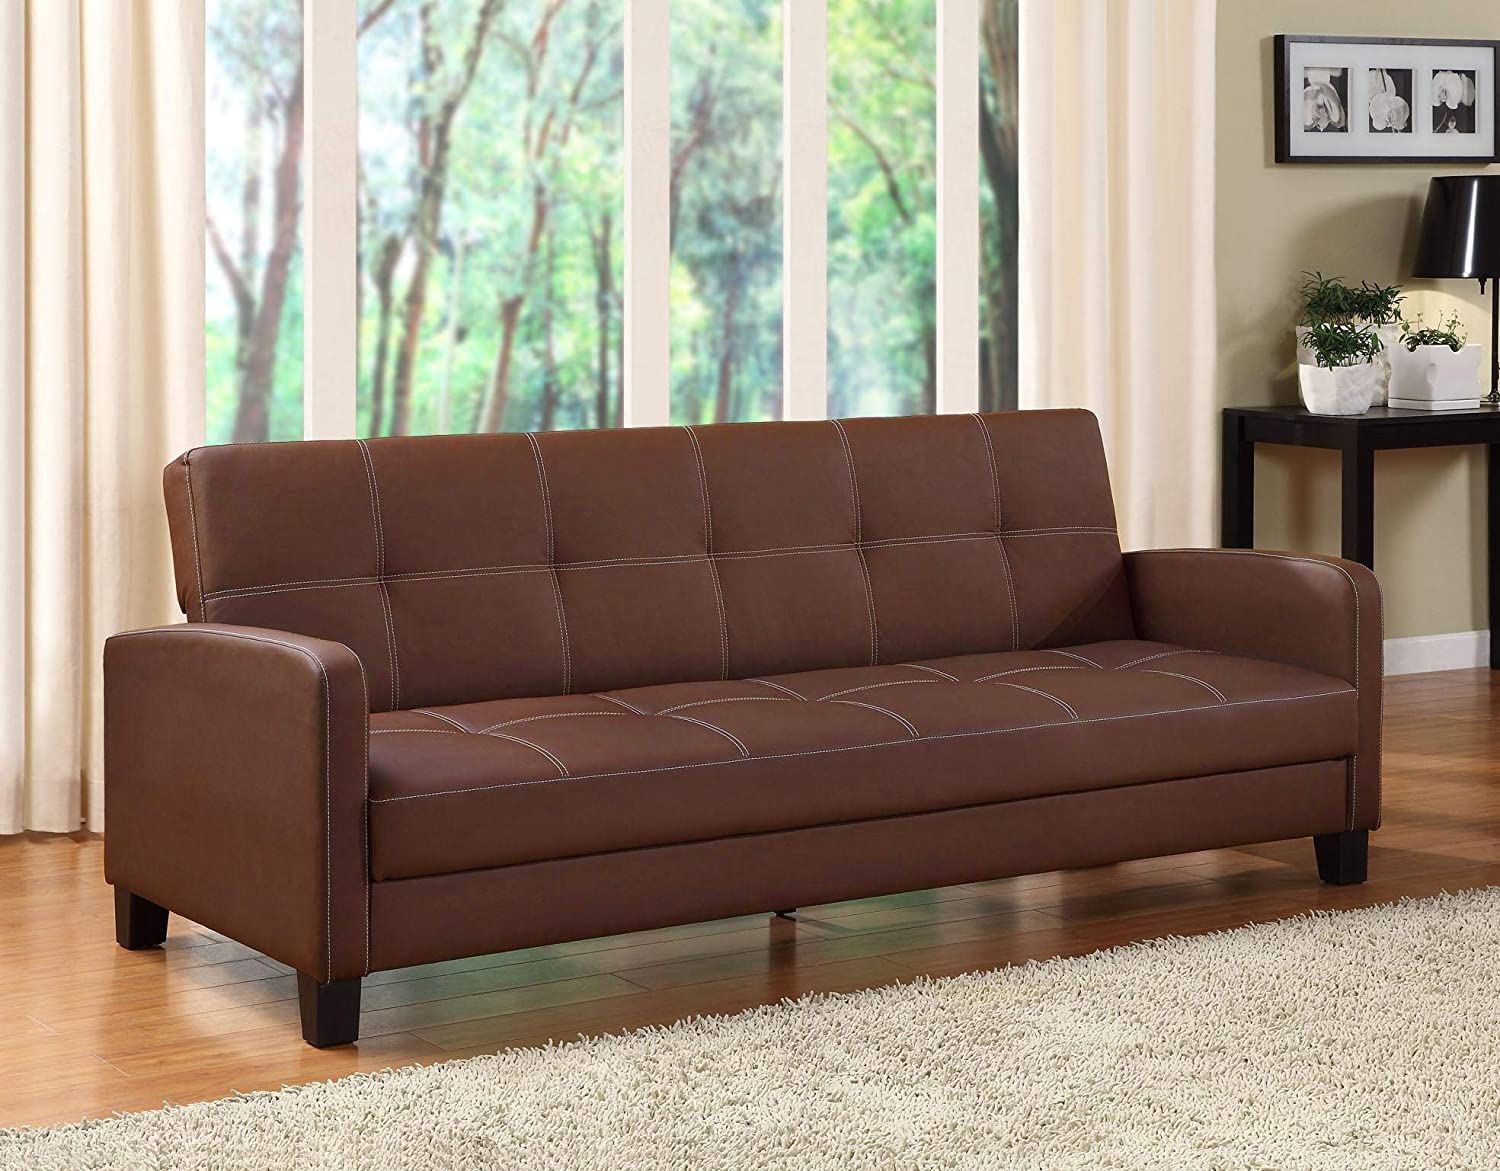 Swell Dhp Delaney Sofa Sleeper In Rich Faux Leather Multifunctional Brown Machost Co Dining Chair Design Ideas Machostcouk